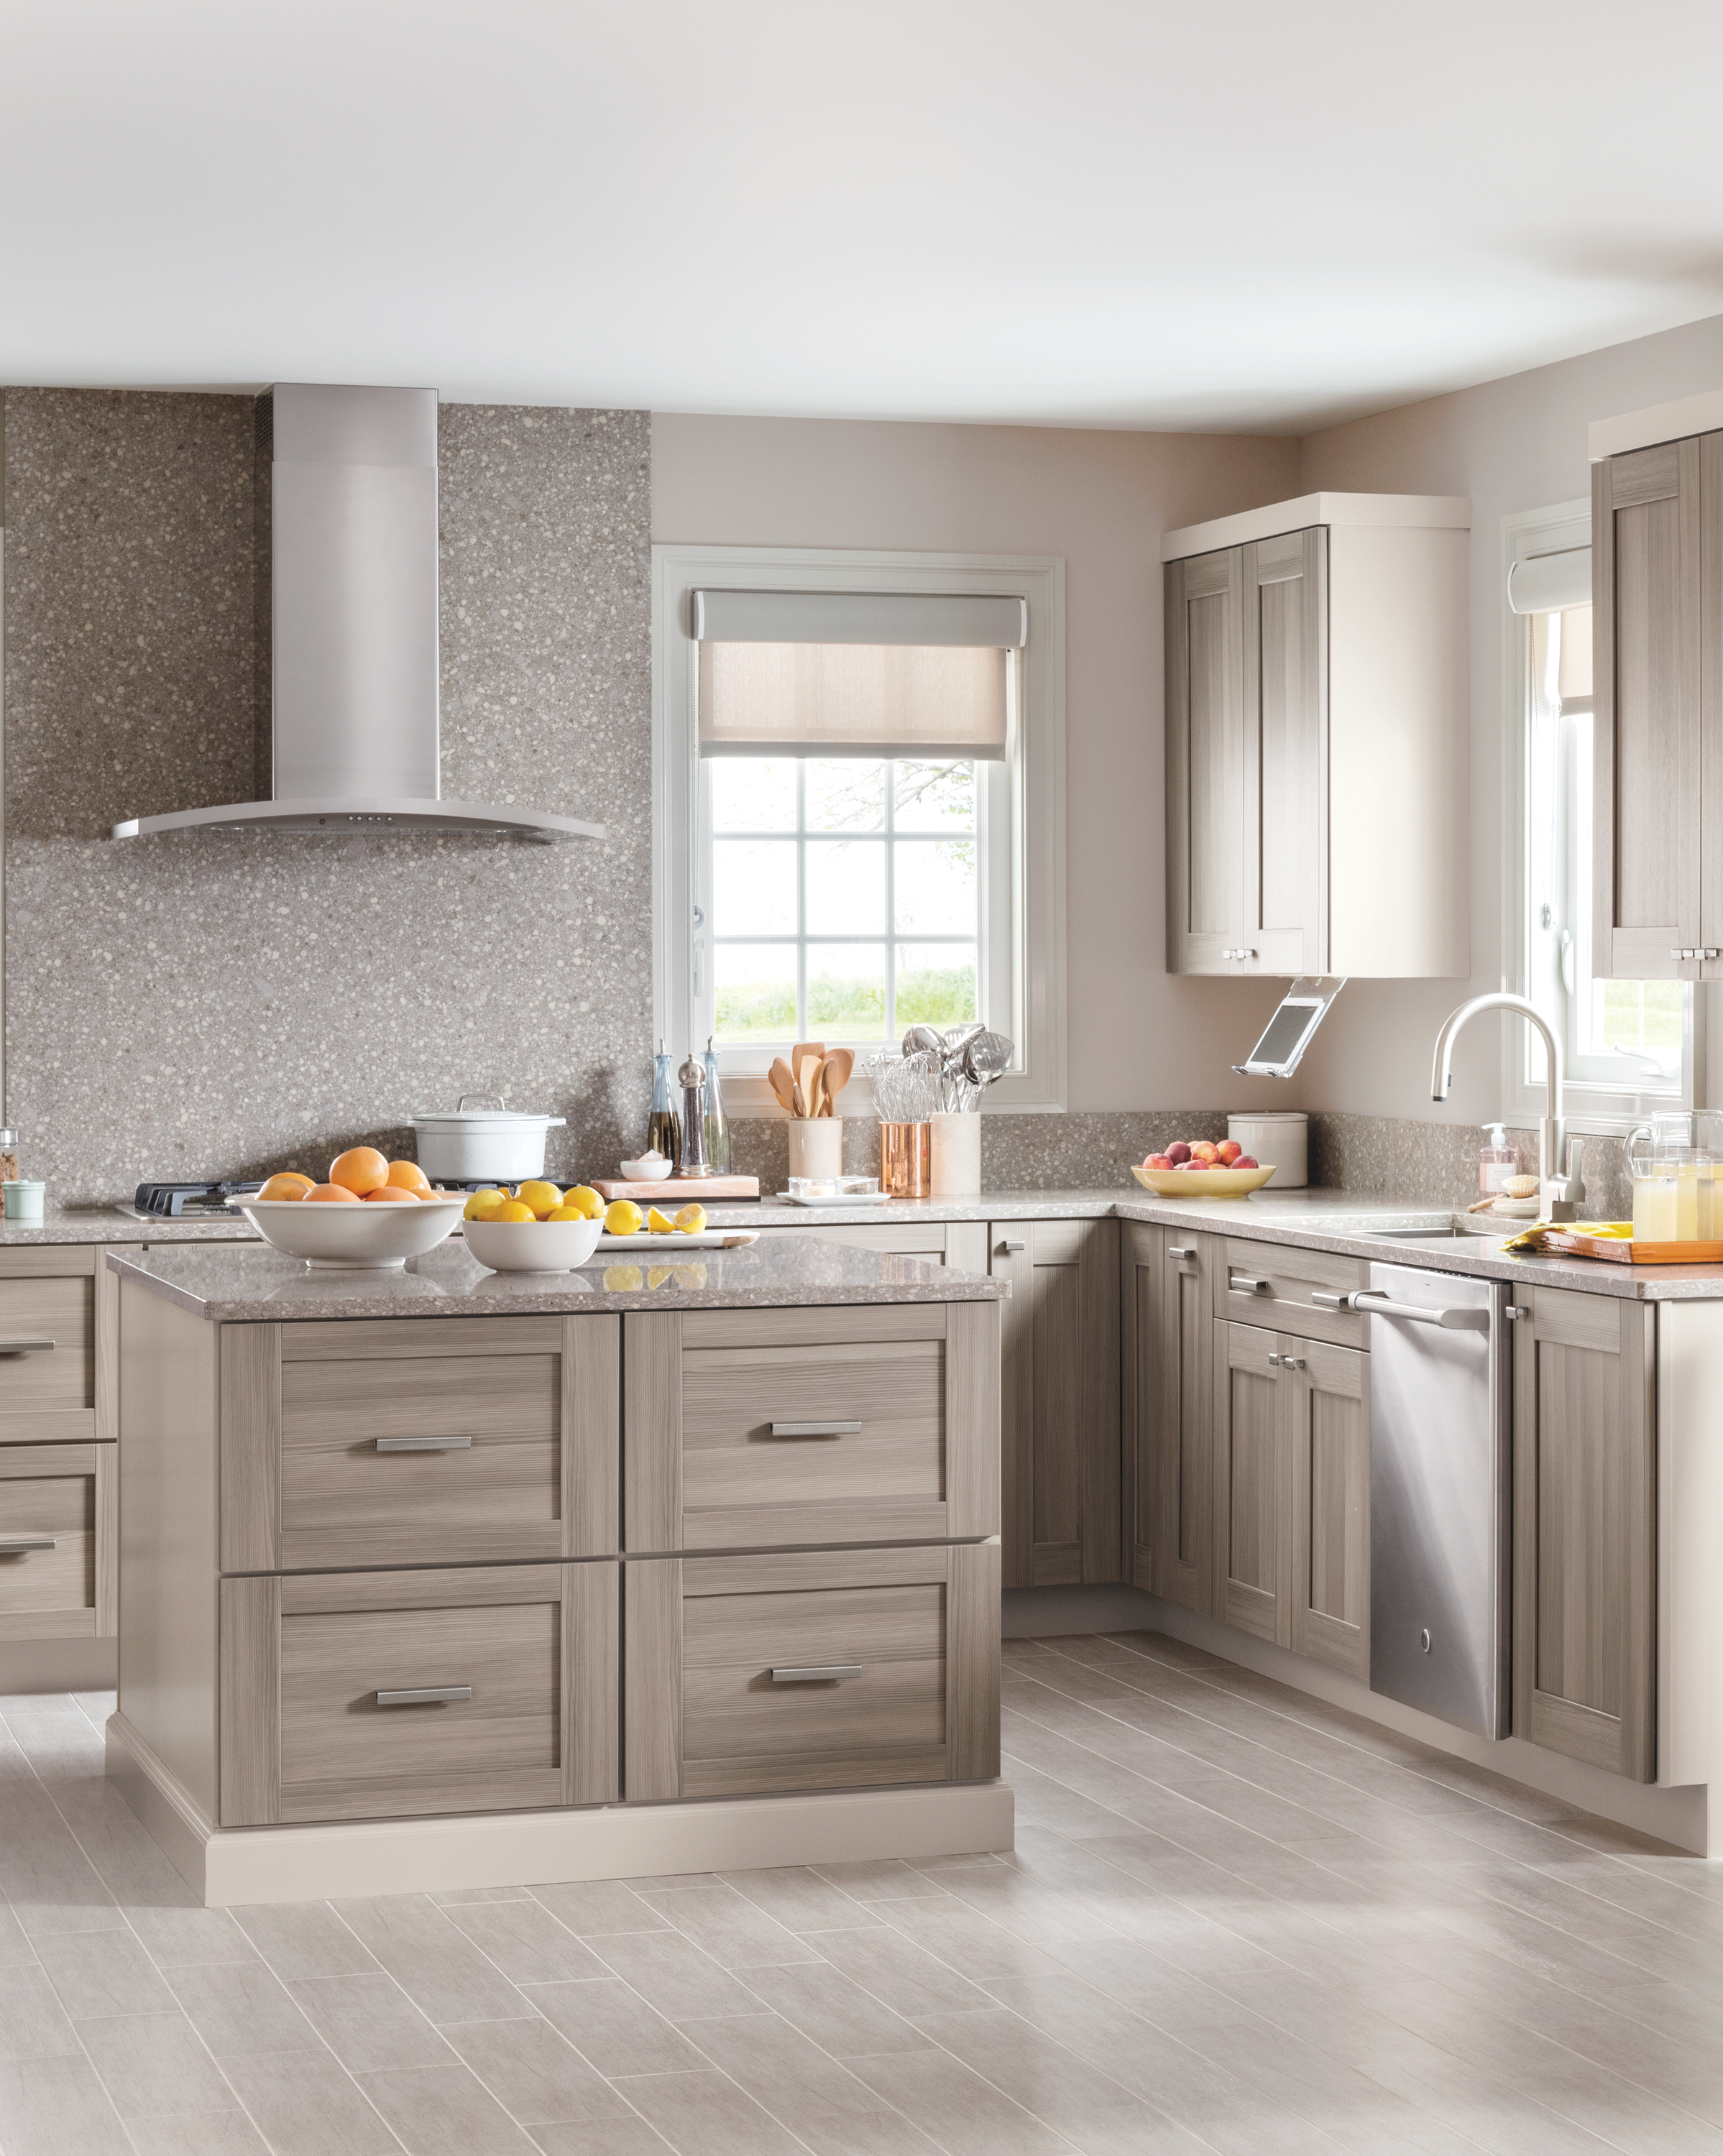 These Kitchen Remodel Tips Will Help You Streamline The Heart Of Your Home Martha Stewart